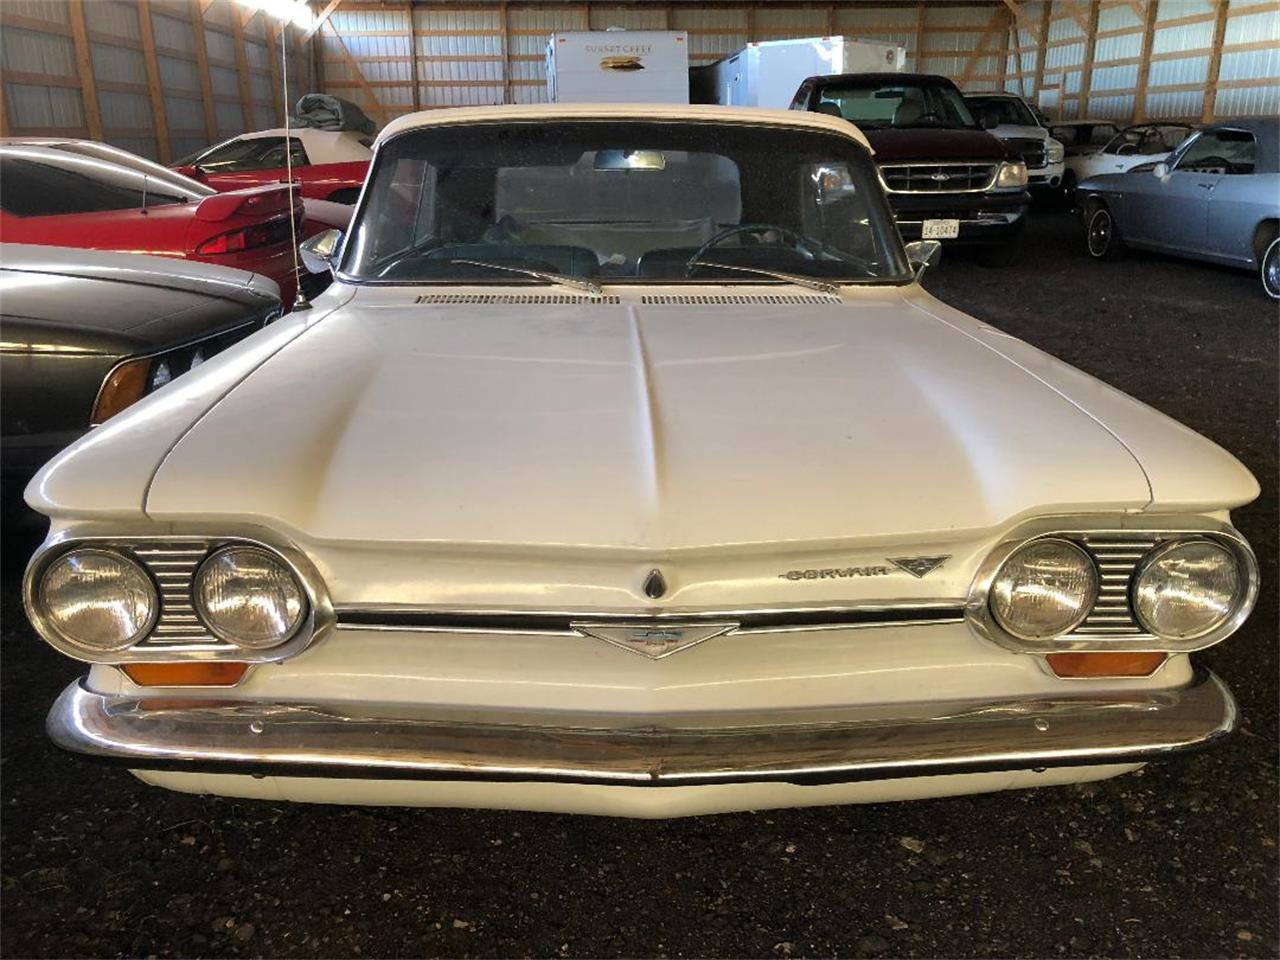 1963 Chevrolet Corvair (CC-1063820) for sale in Hastings, Nebraska